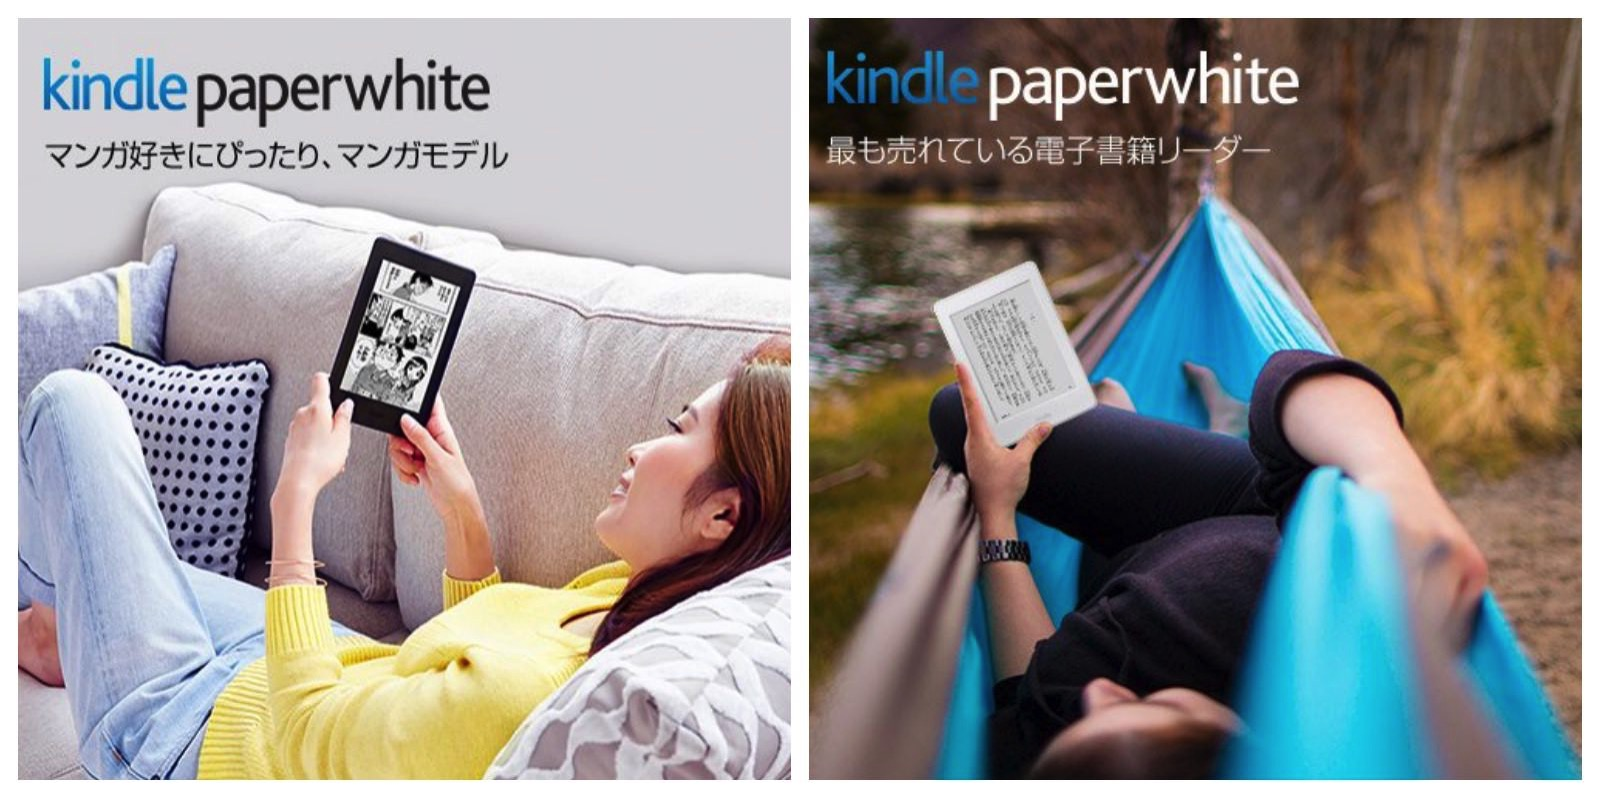 Kindle Paperwhite and manga model sale